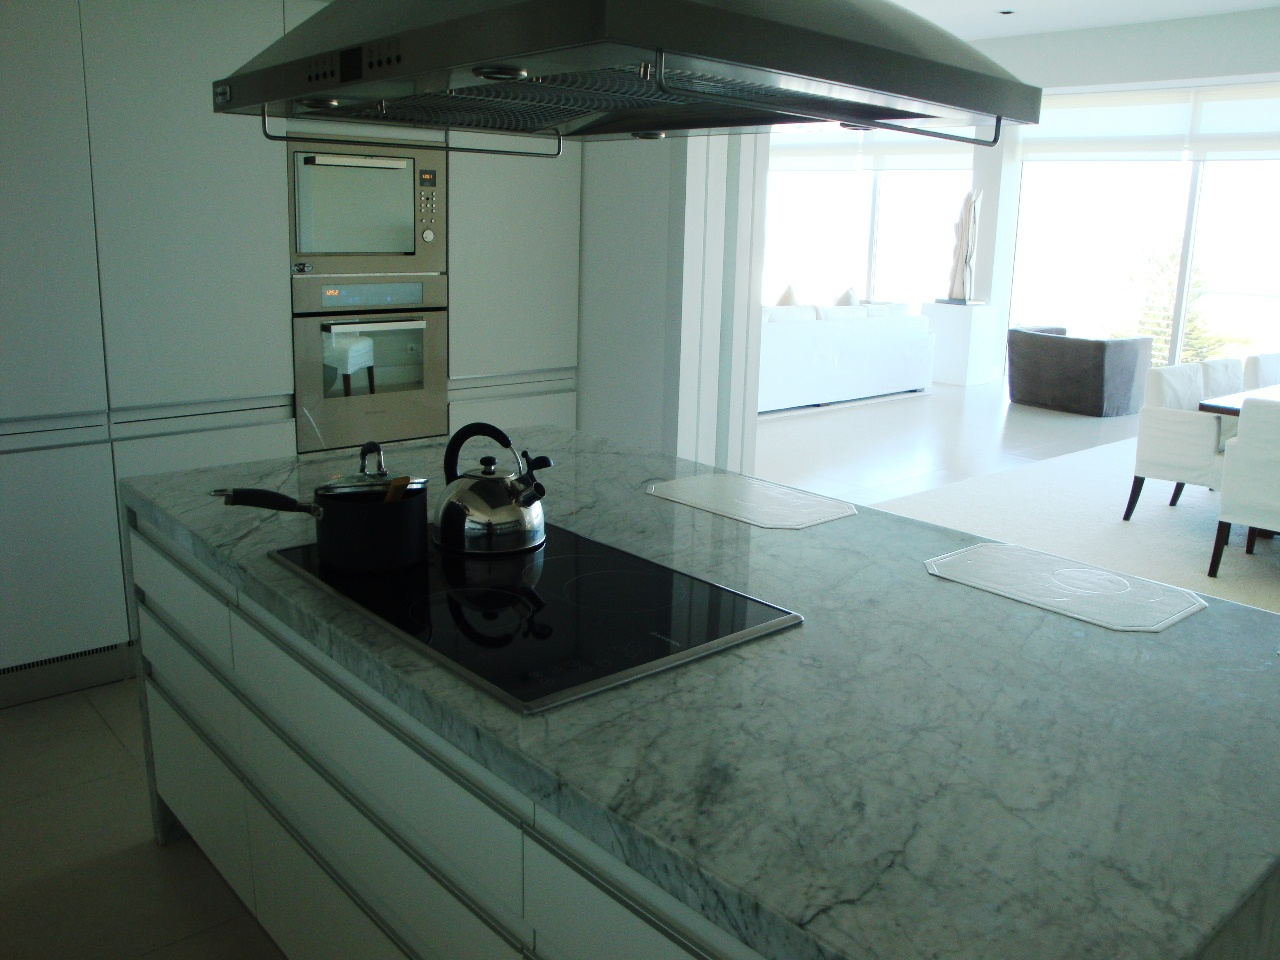 Modern kitchen with central counter